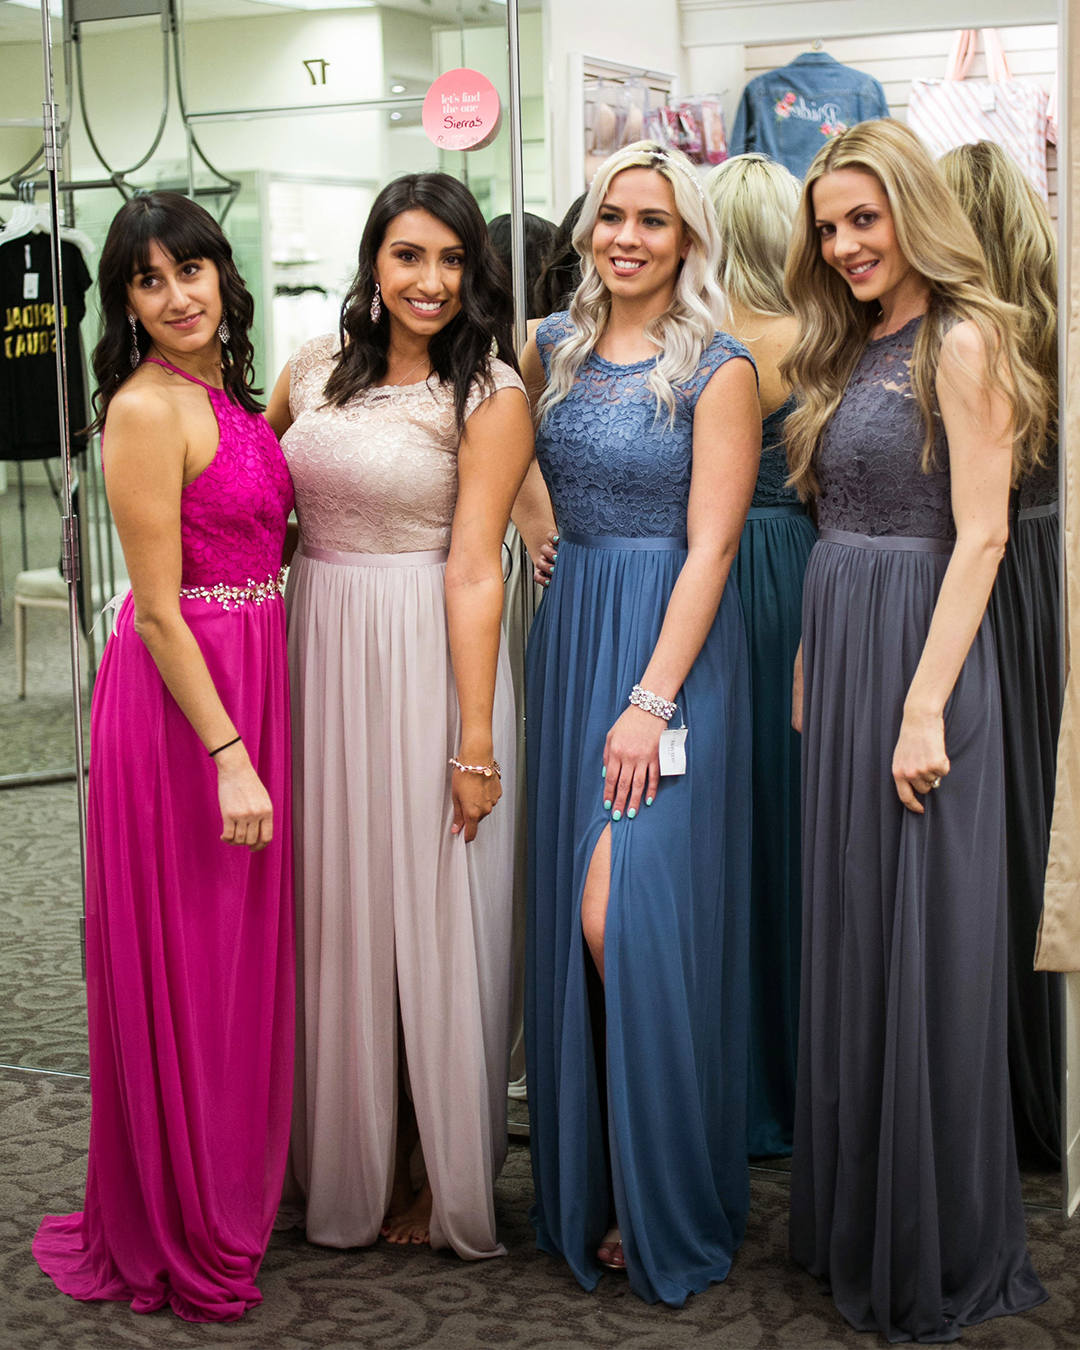 Four bridesmaids in long lace dresses shopping in David's Bridal store